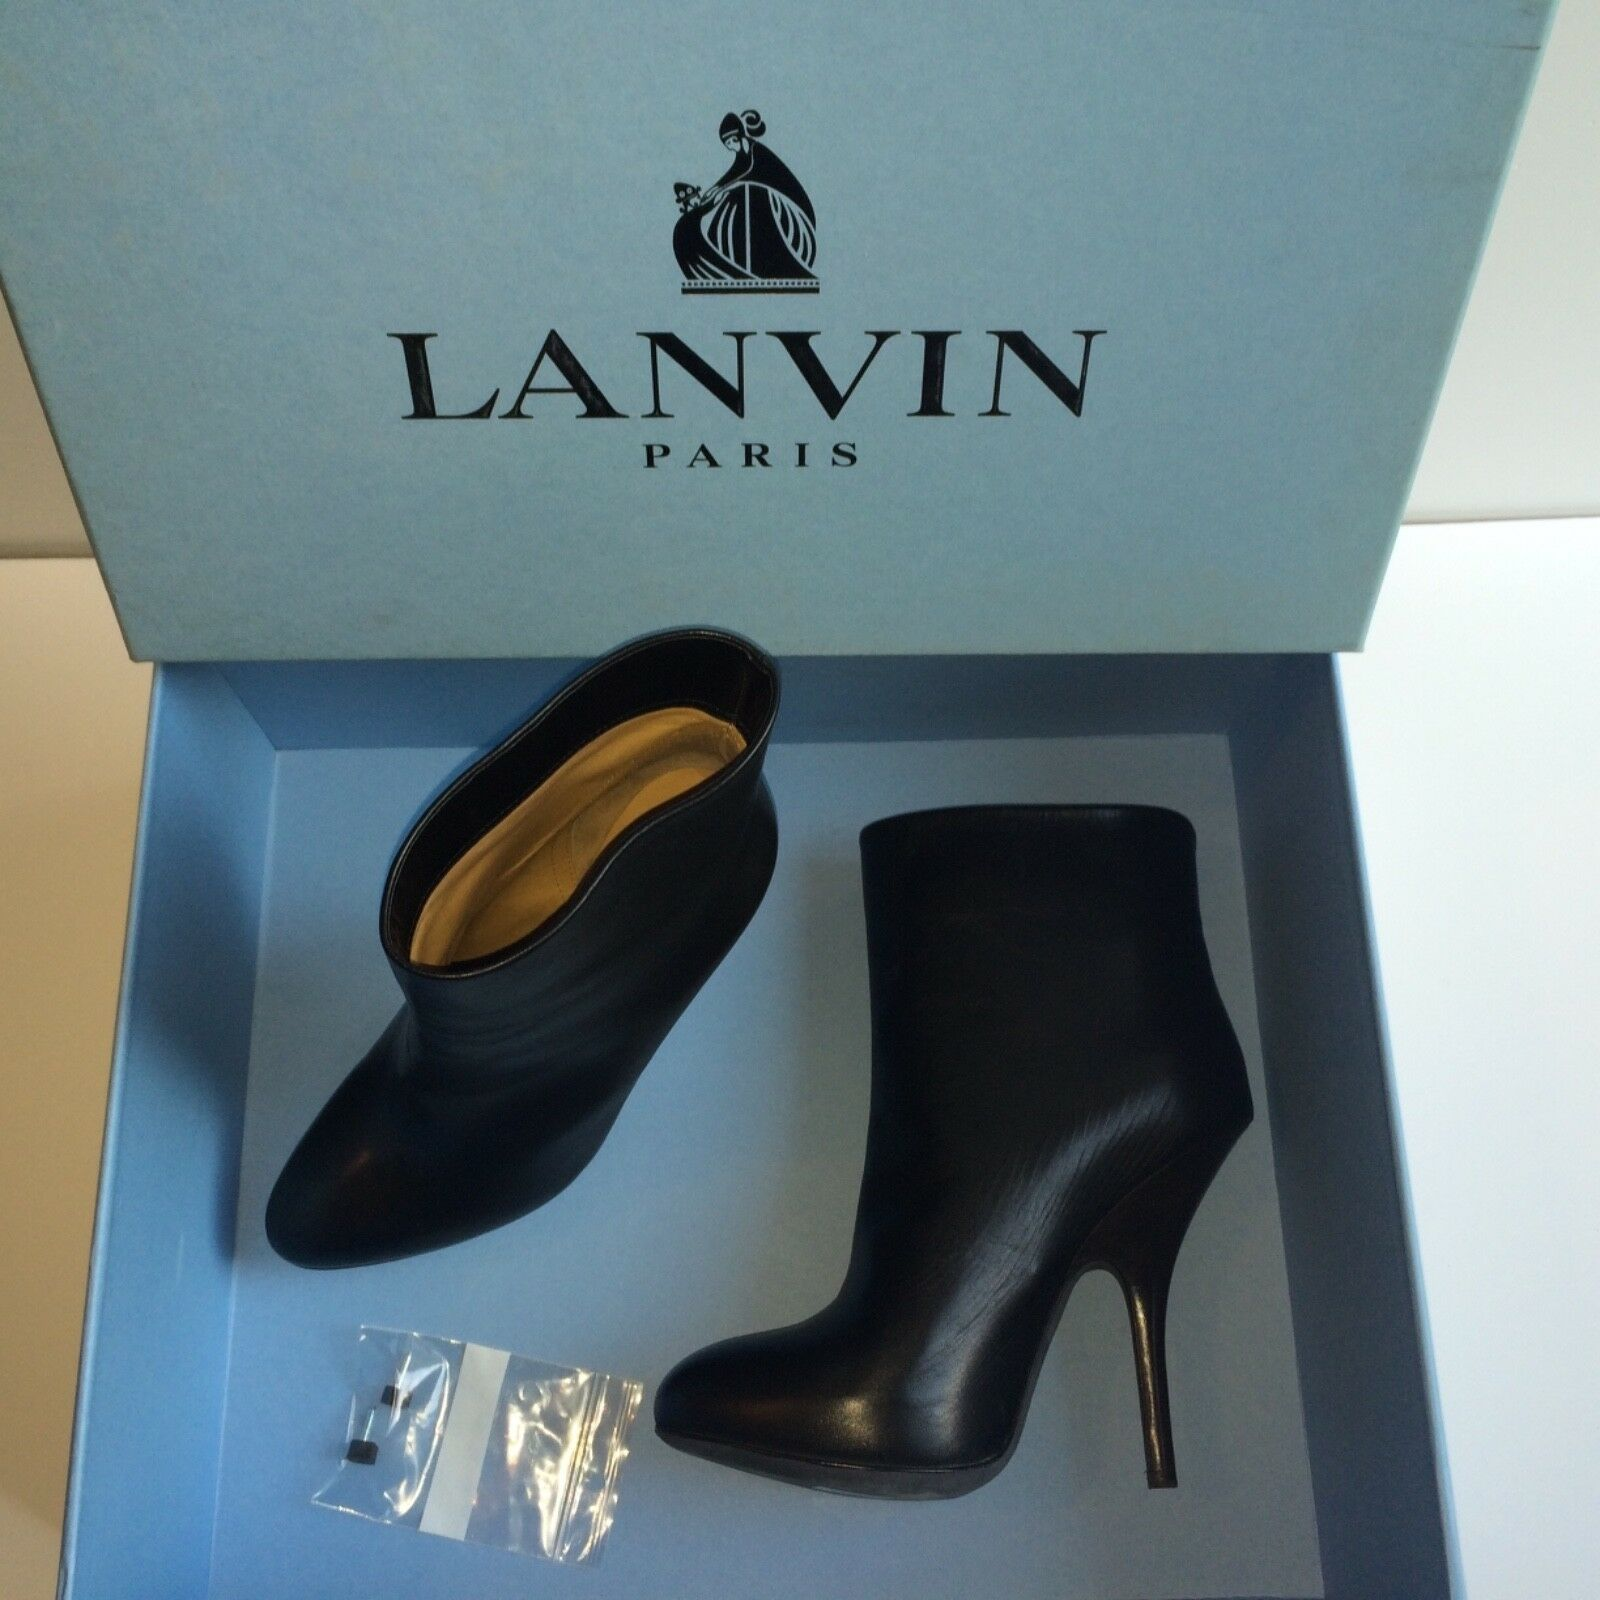 Lanvin Luxury Calf Skin Ankle Boots, Navy, Size 2 UK, 35 EU.